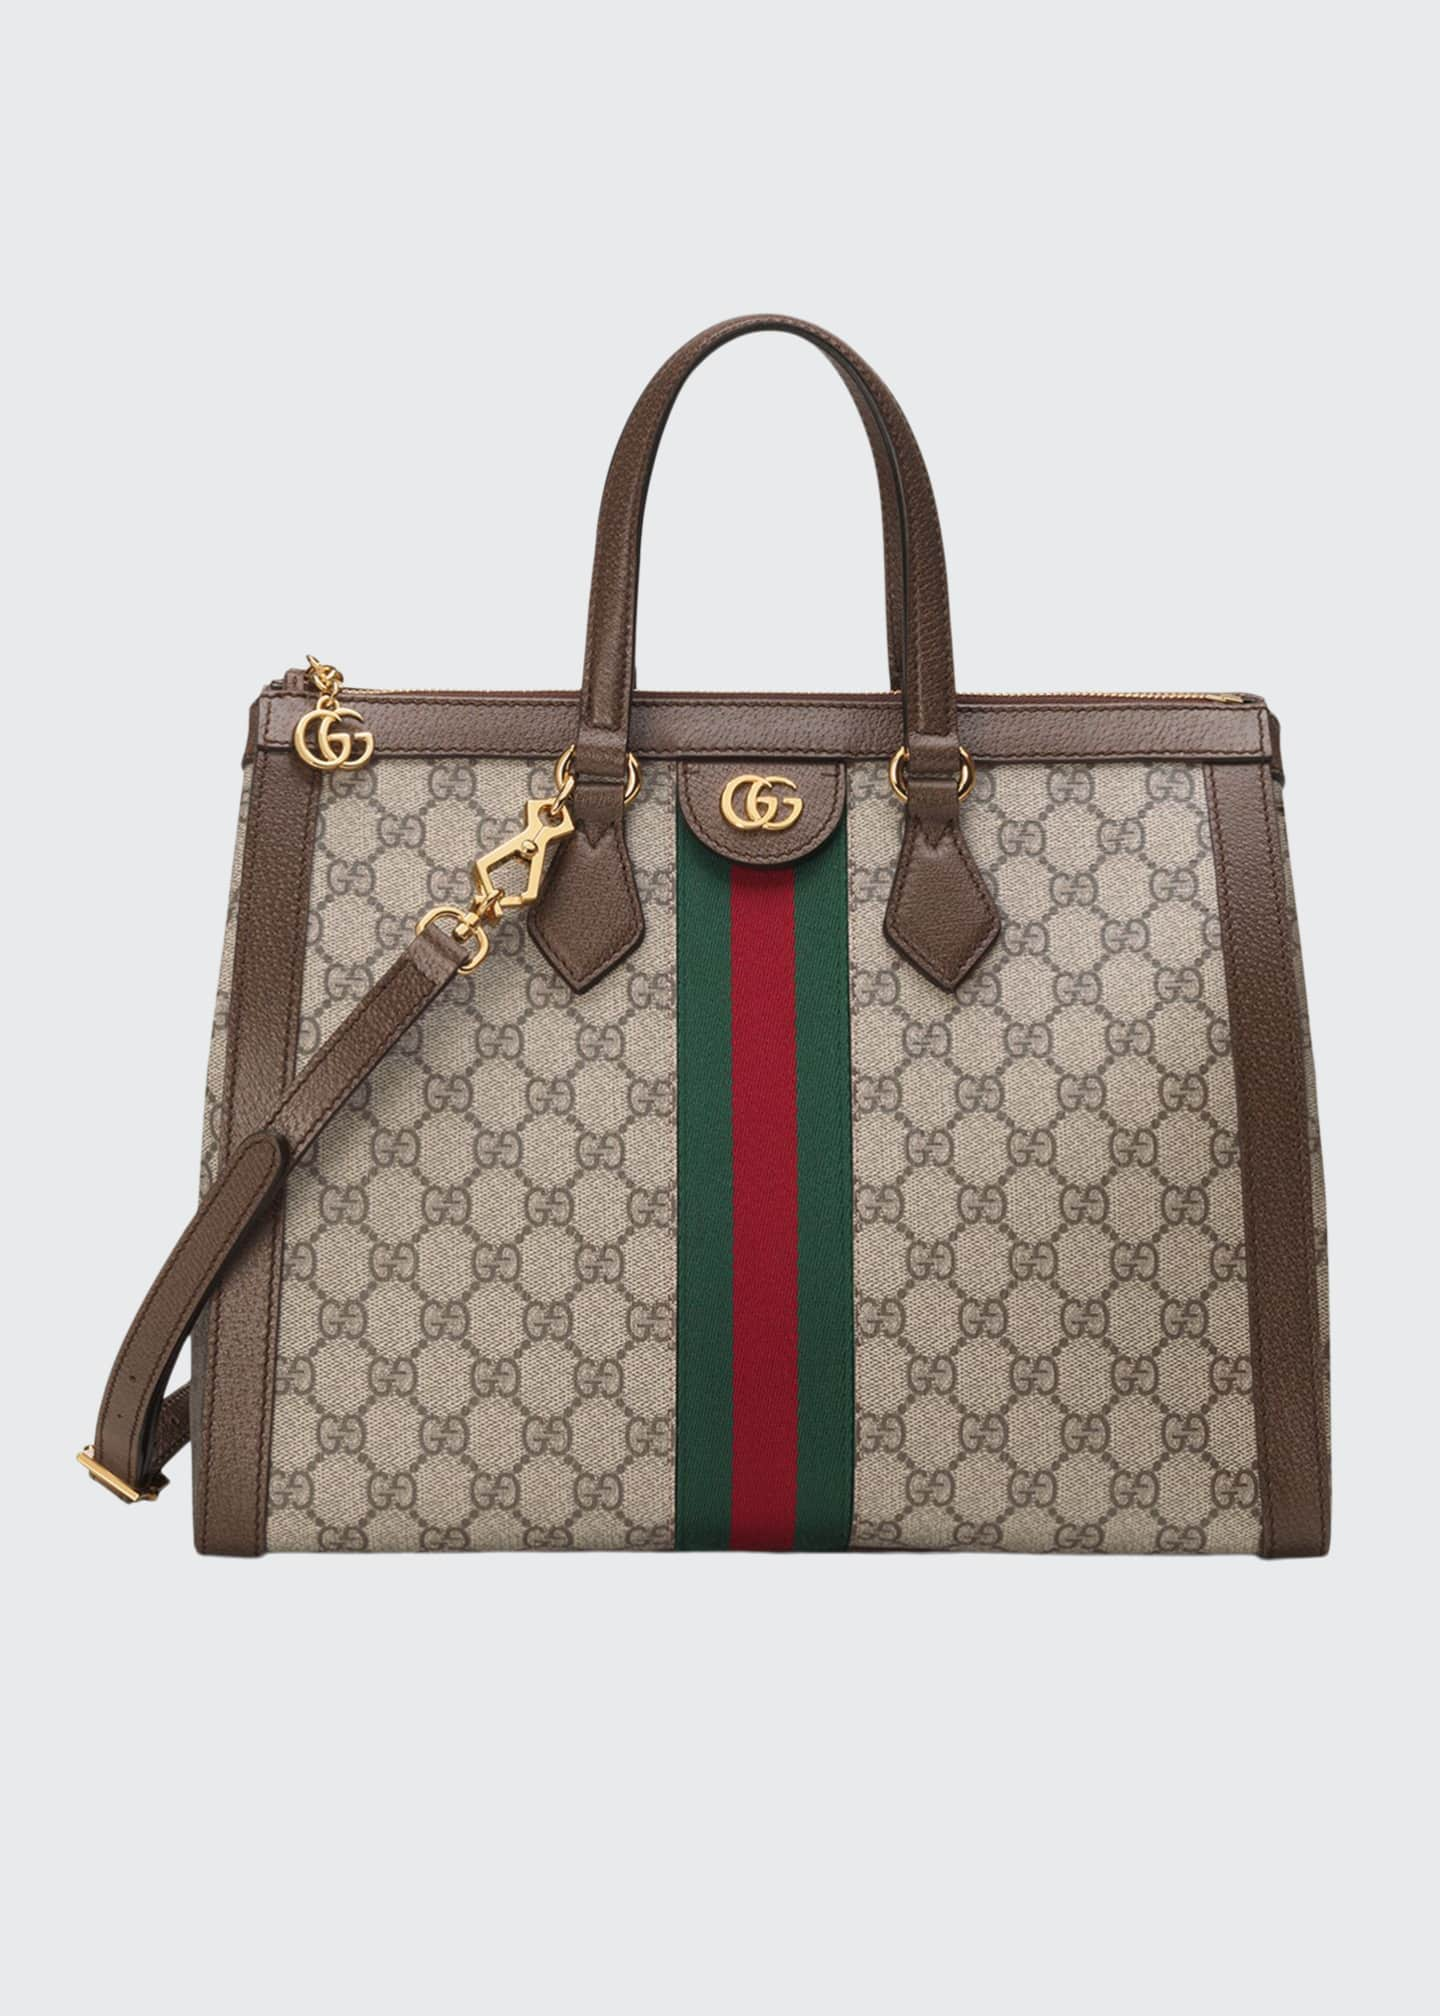 Gucci Ophidia Medium GG Supreme Canvas Web Top-Handle